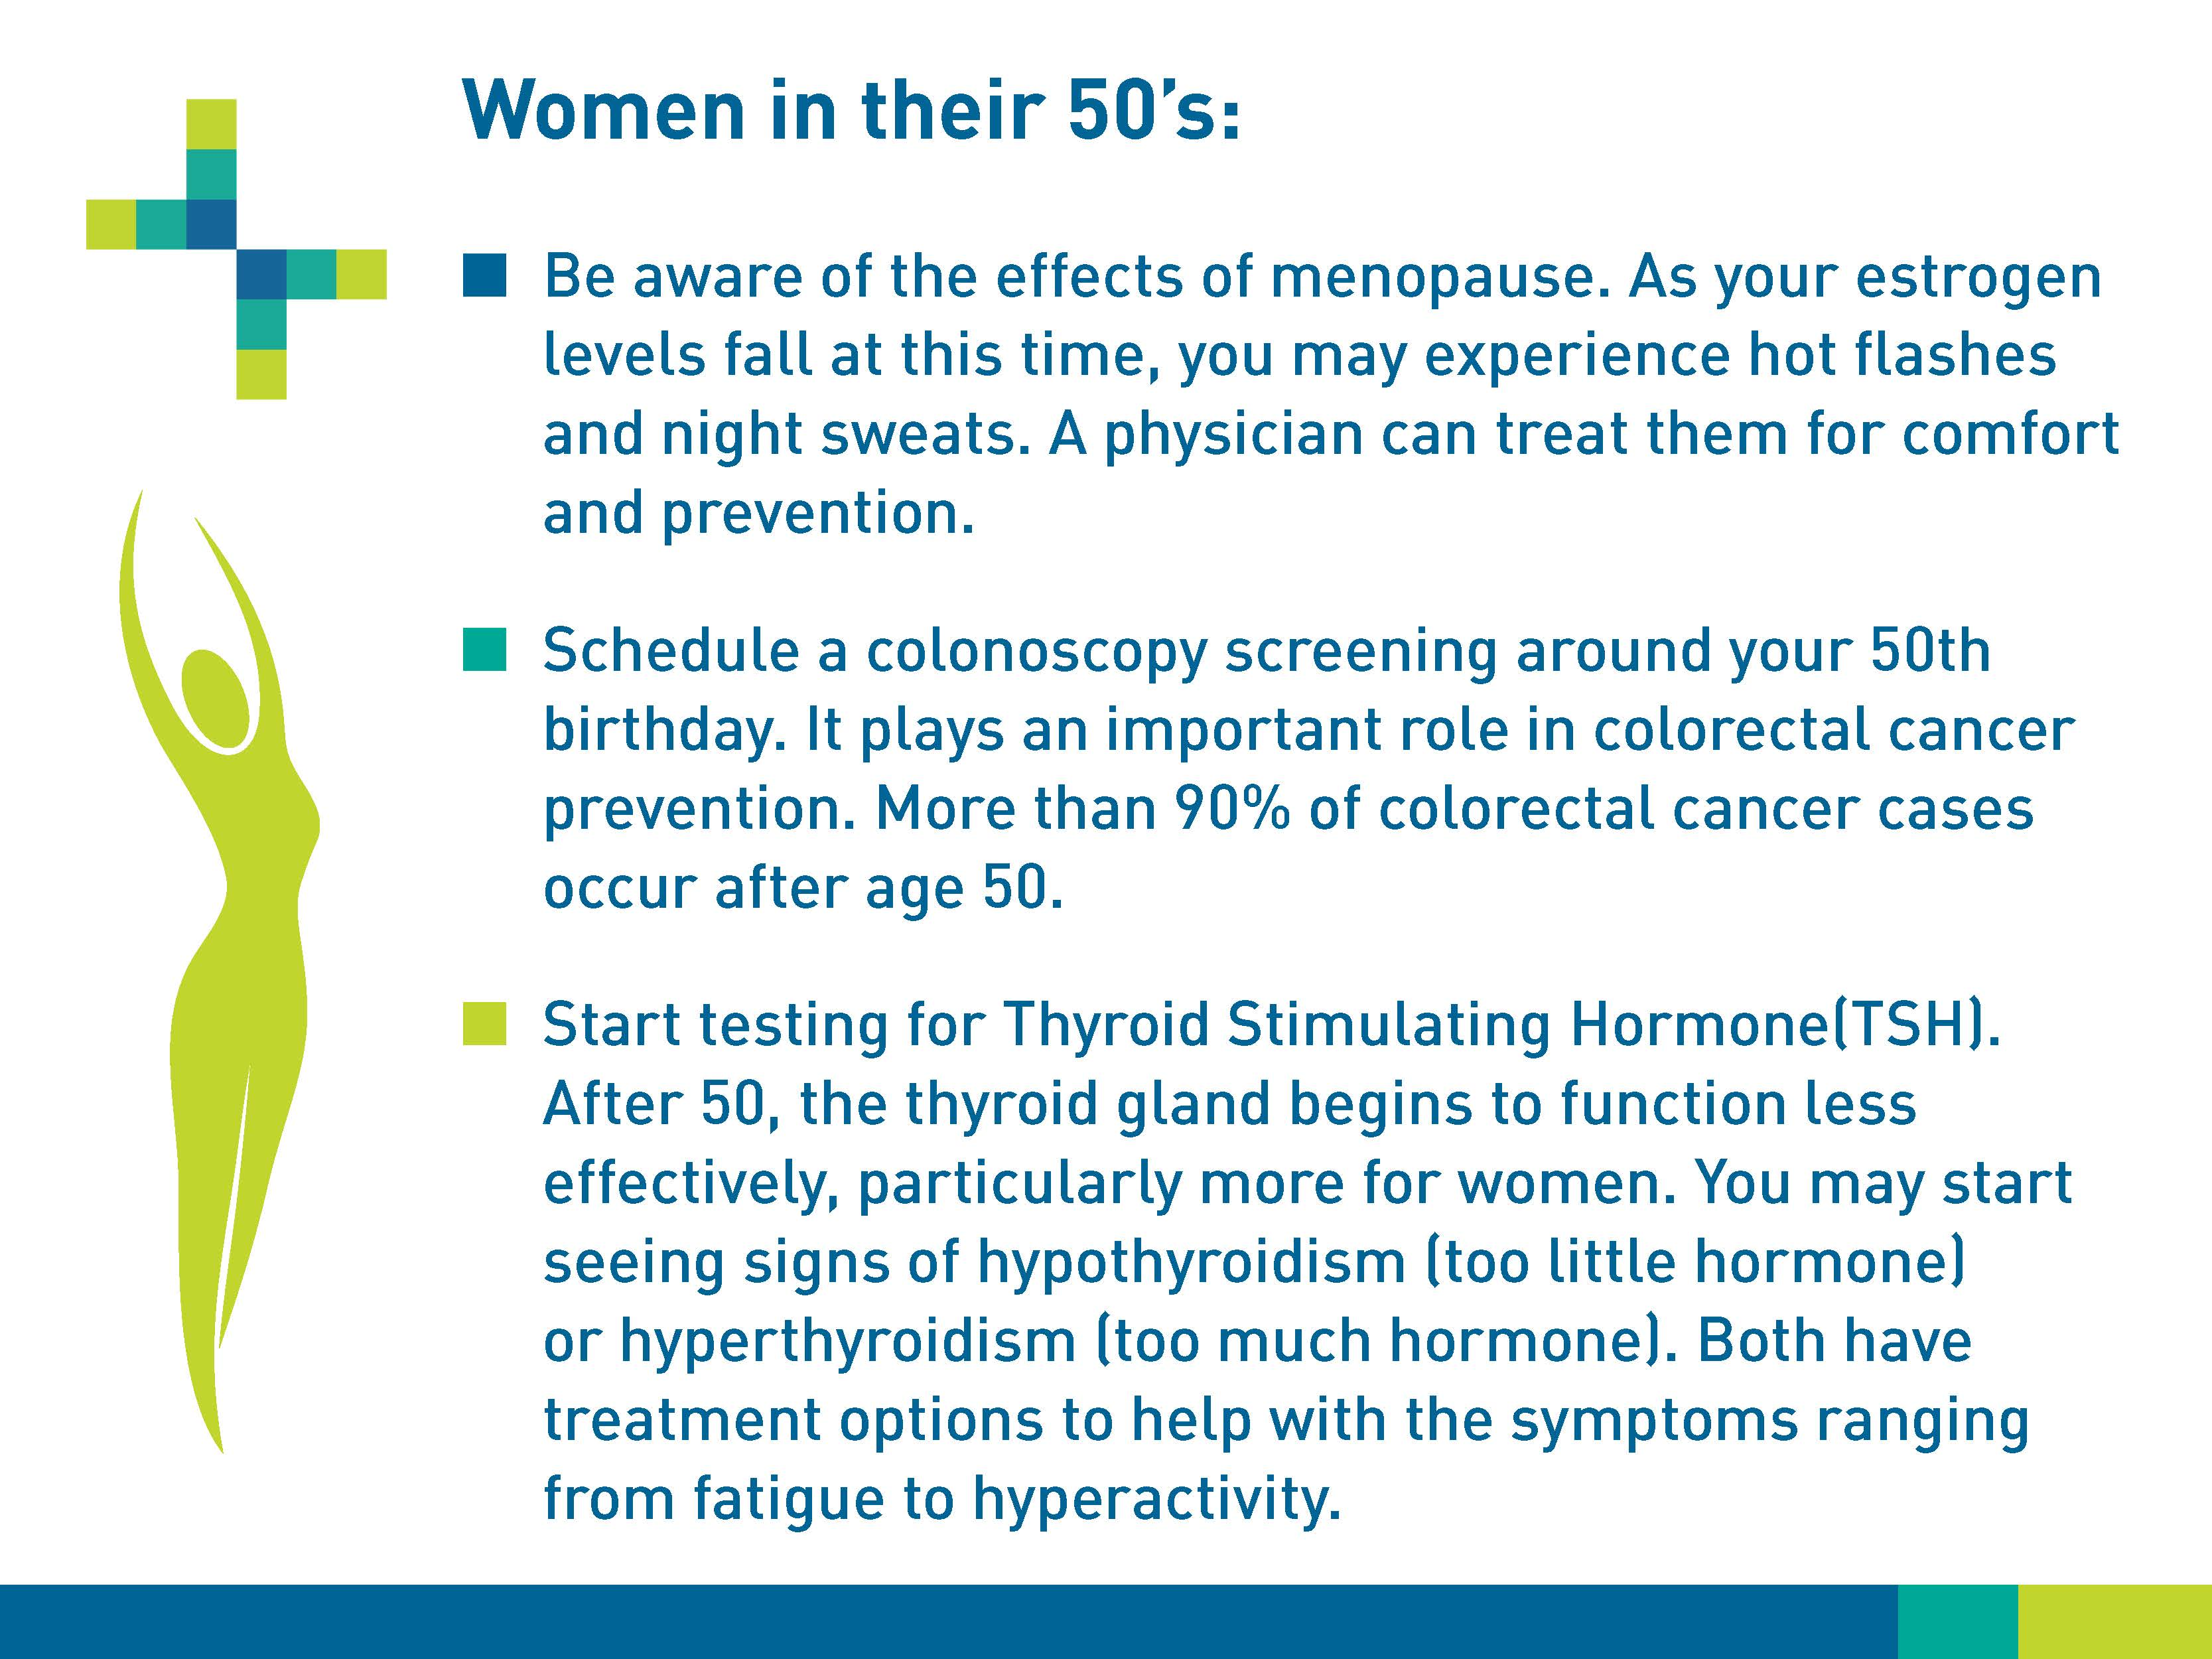 Women in their 50s: Be aware of the effects of menopause. As your estrogen levels fall at this time, you may experience hot flashes and night sweats. A physicians can treat them for comfort and prevention. Schedule a colonoscopy screening around your 50th birthday. It plays an important role in colorectal cancer prevention. More than 90% of colorectal cancer cases occur after 50. Start testing for Thyroid Stimulating Hormone (TSH). After 50, the thyroid gland begins to function less effectivetly, particularly more for women. You may start seeing signs of hyperparathyroidism (too little hormone) or hyperthyroidism (too much hormone). Both have treatment options to help with the symptoms ranging from fatigue to hyperactivity.